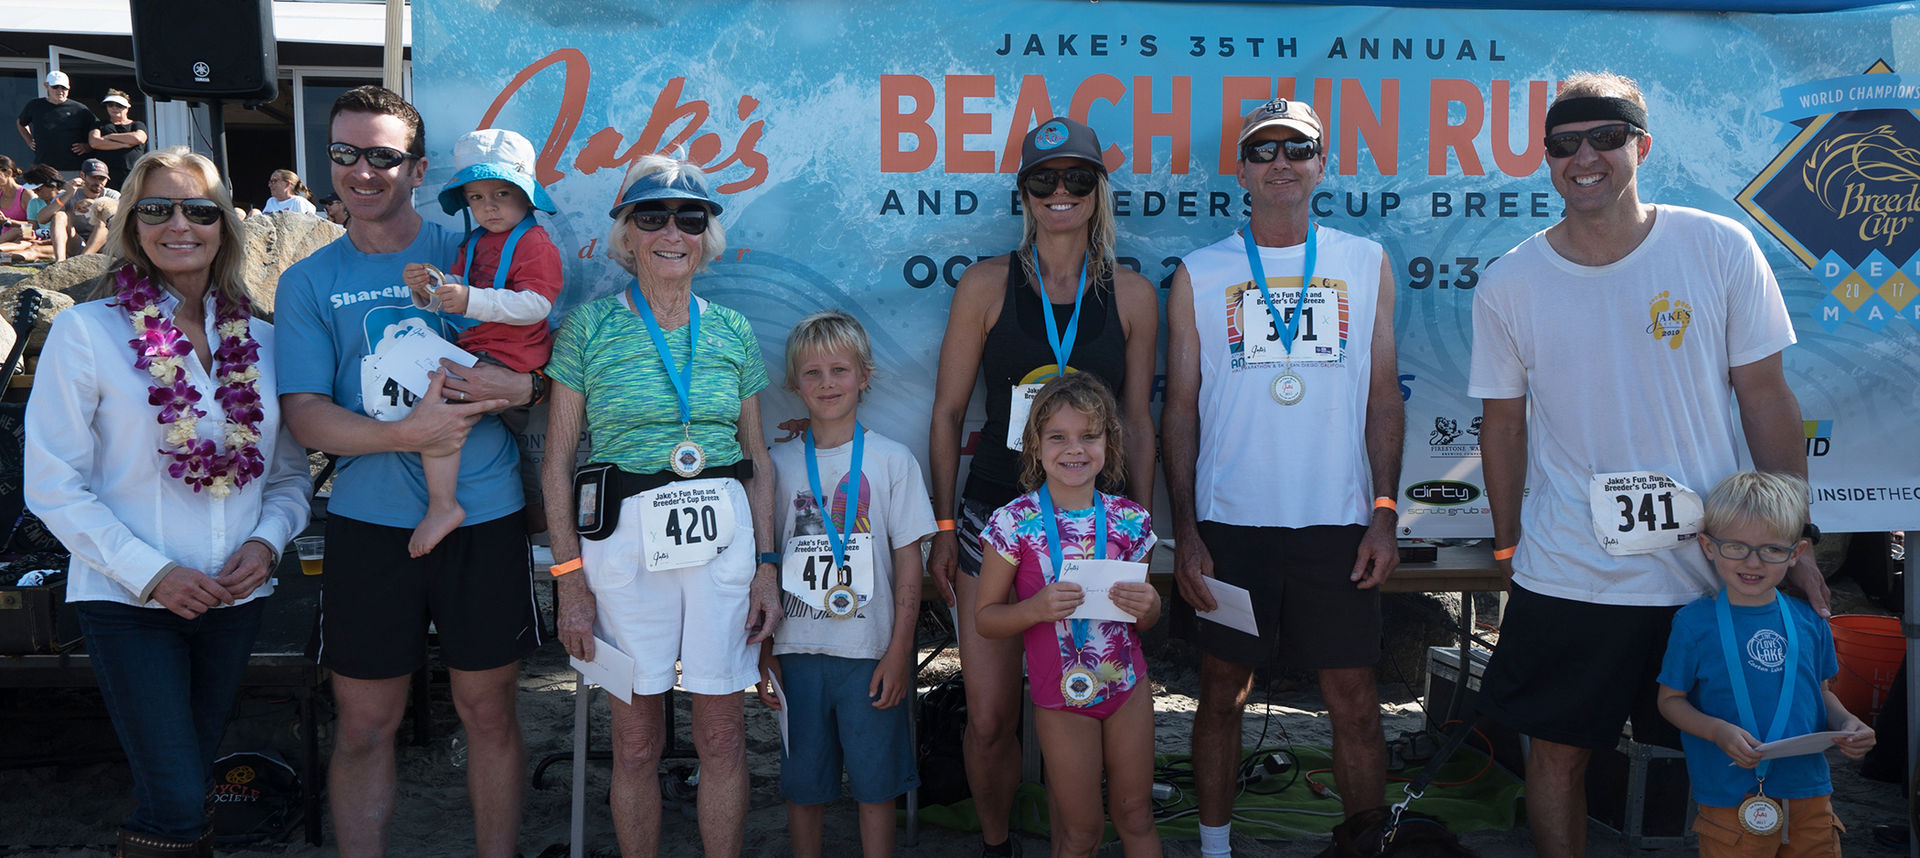 Jake's Beach Fun Run